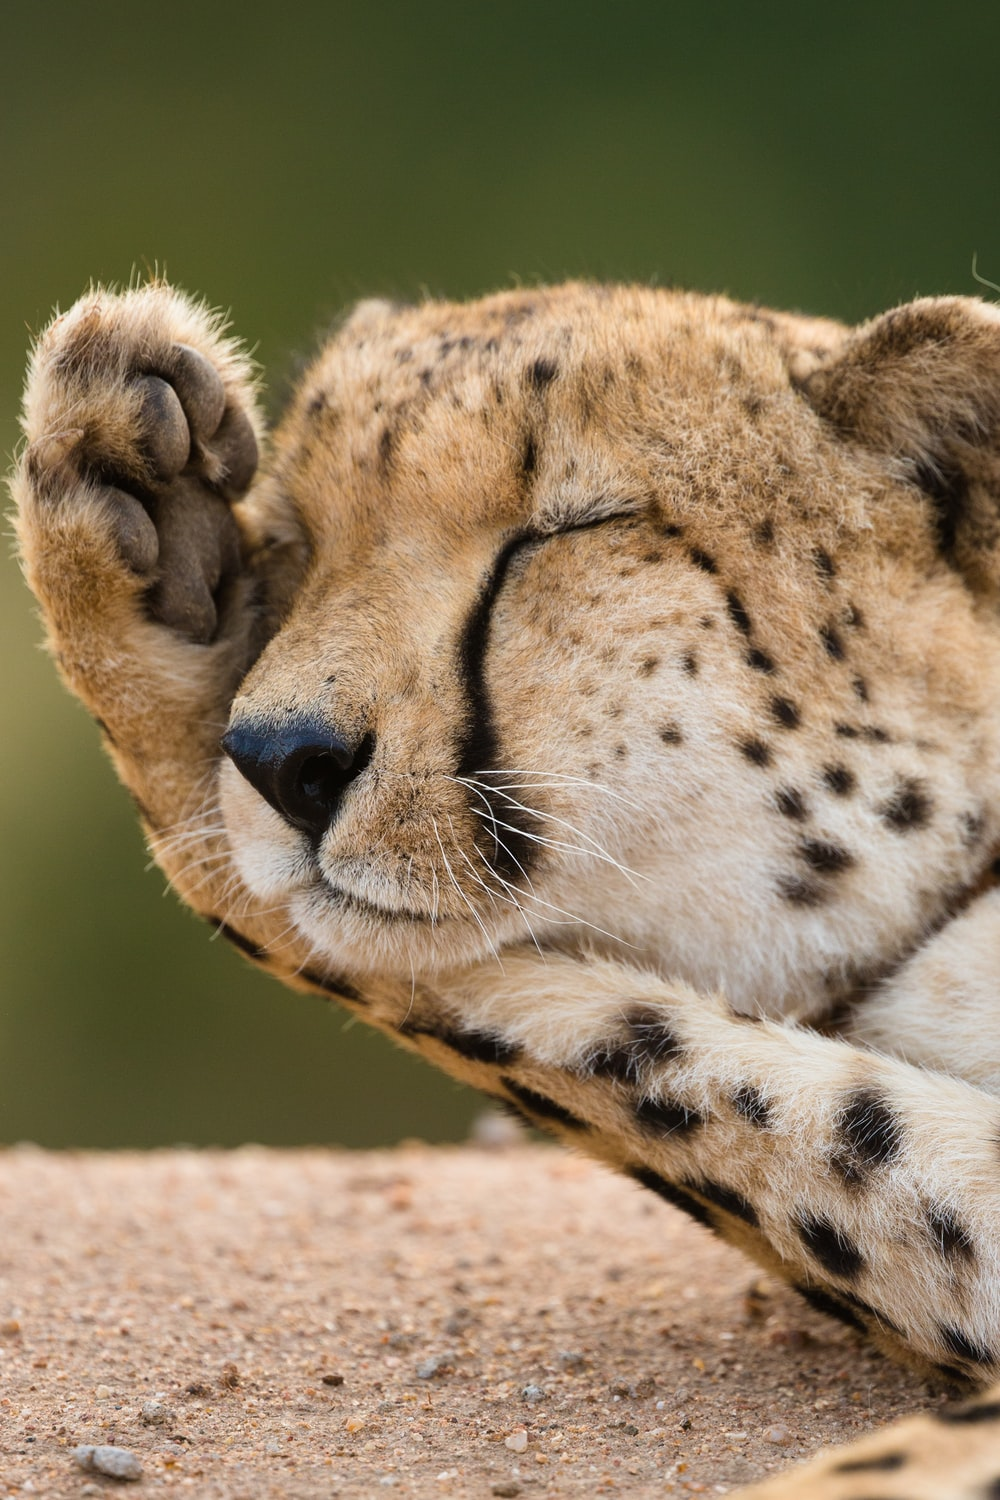 closeup photo of cheetah lying on ground